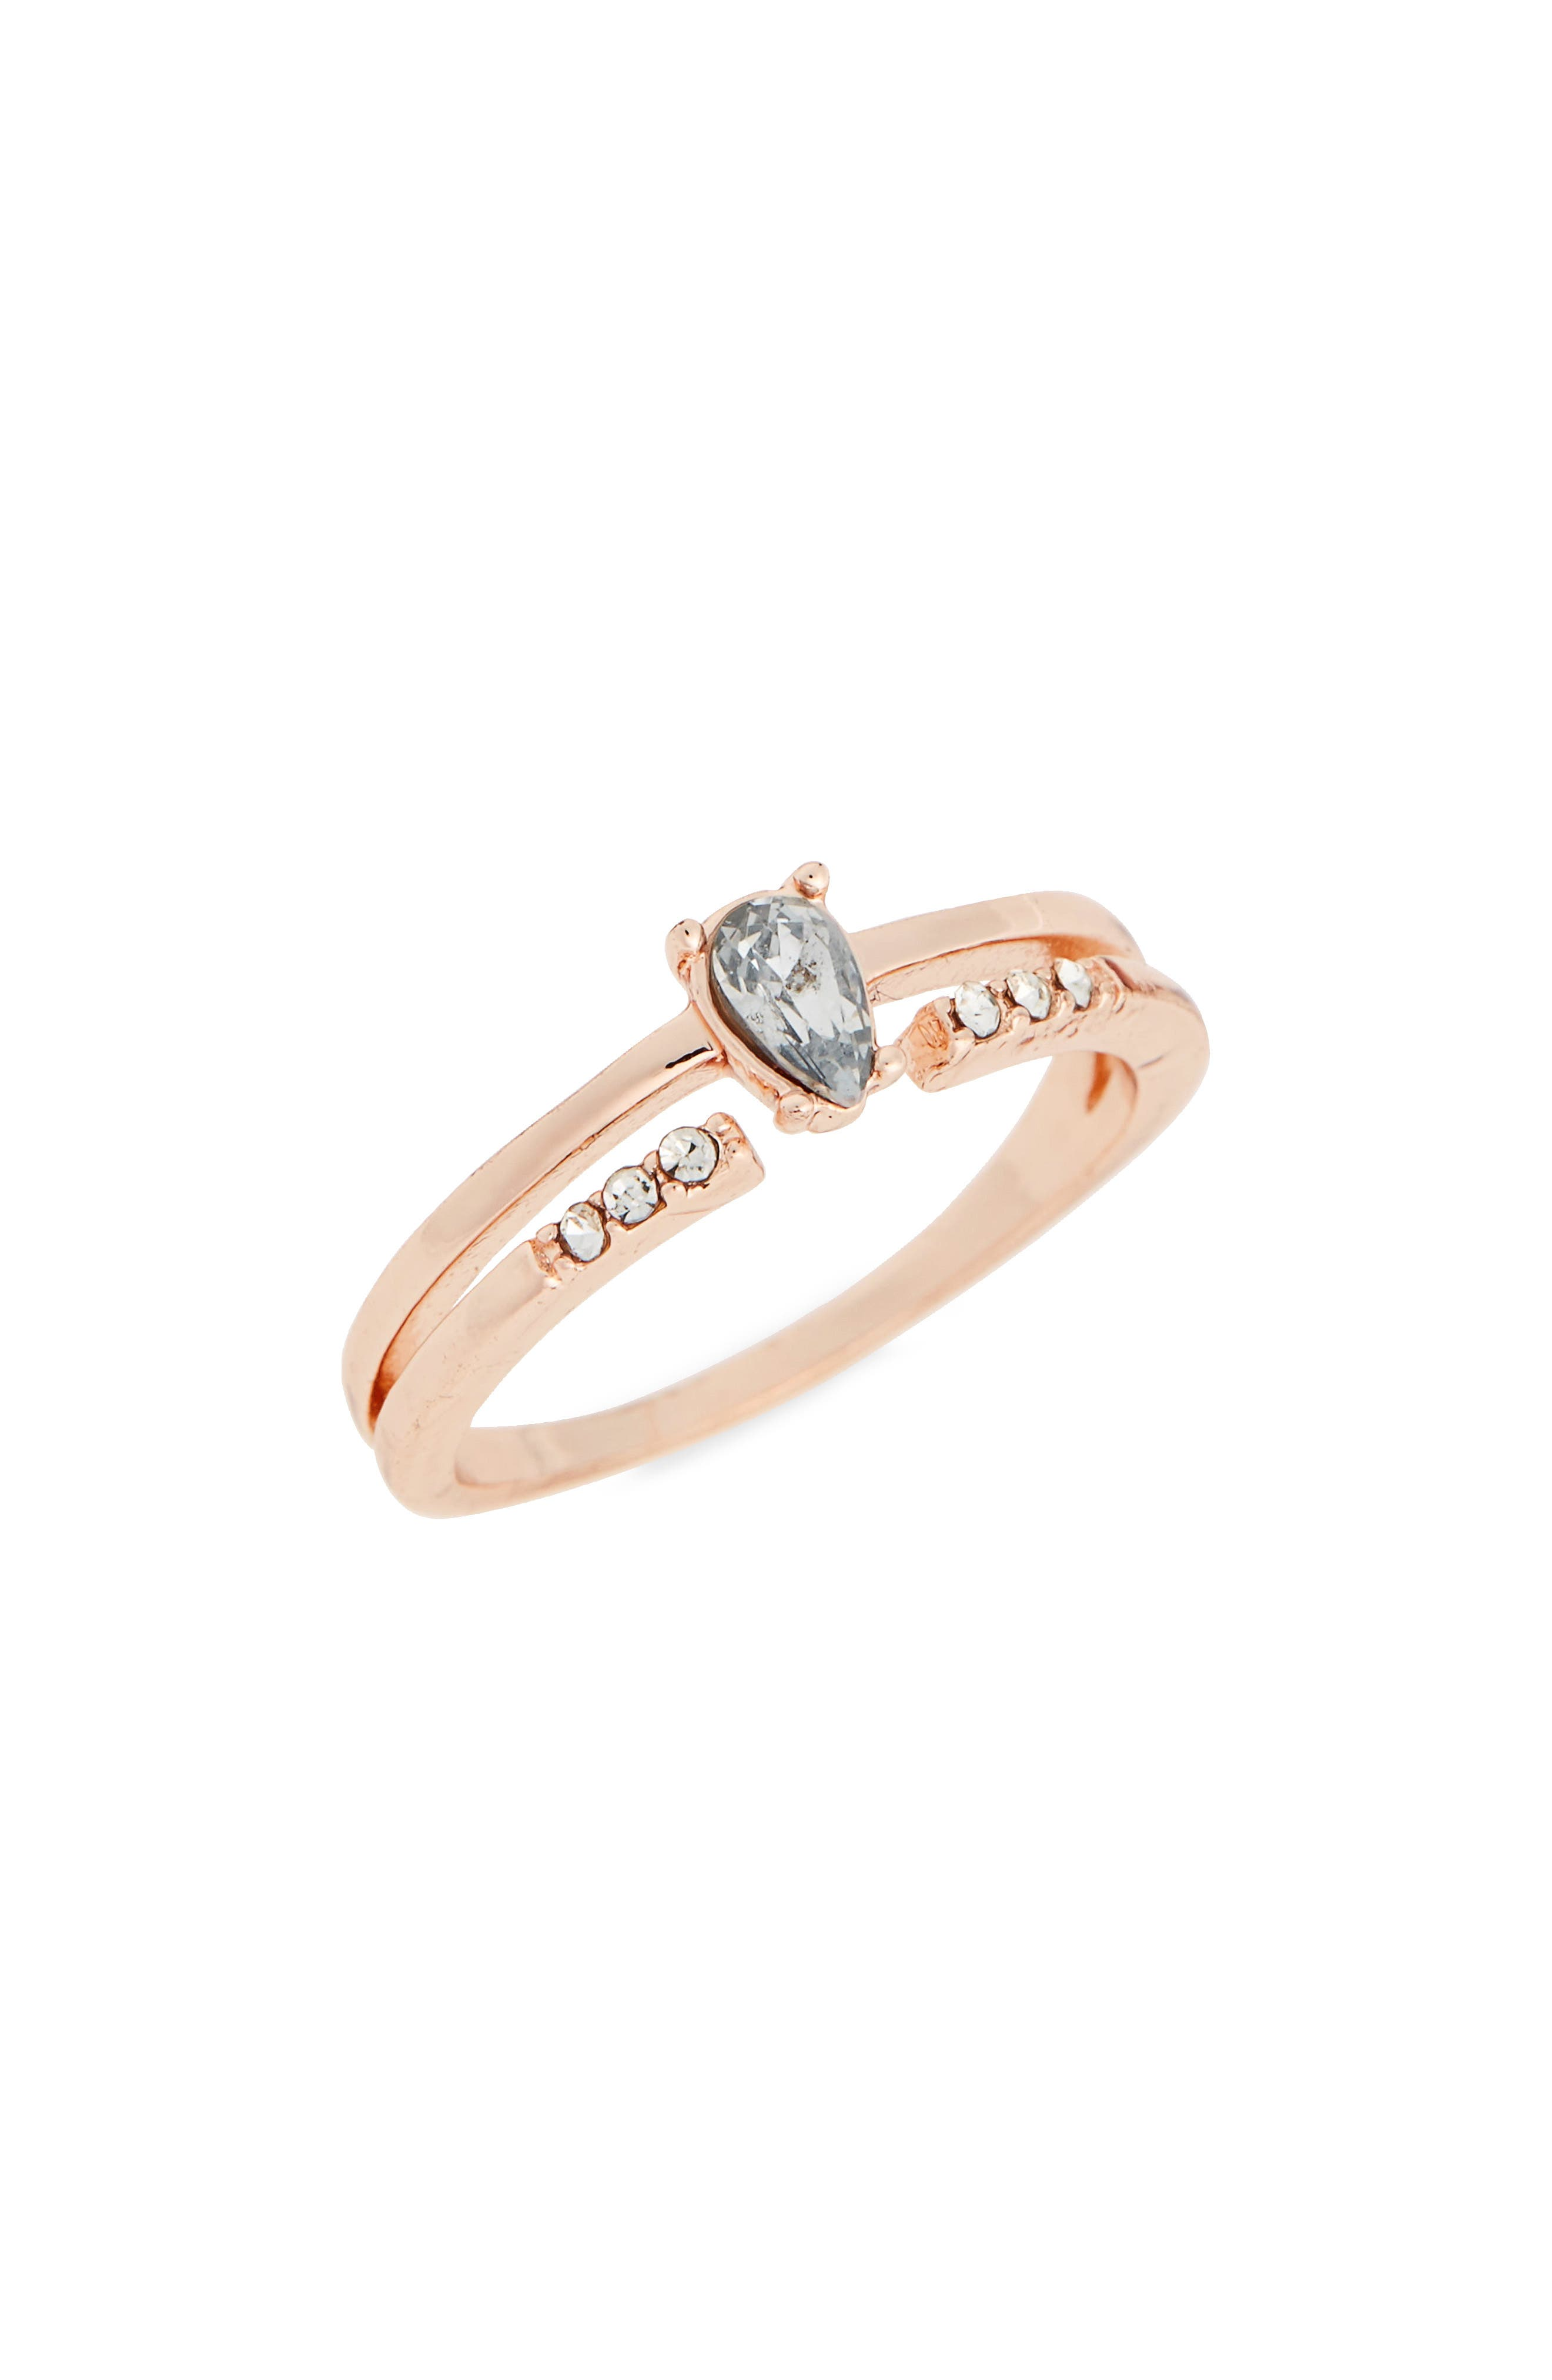 Fine Double Band Stone Ring,                             Main thumbnail 1, color,                             712